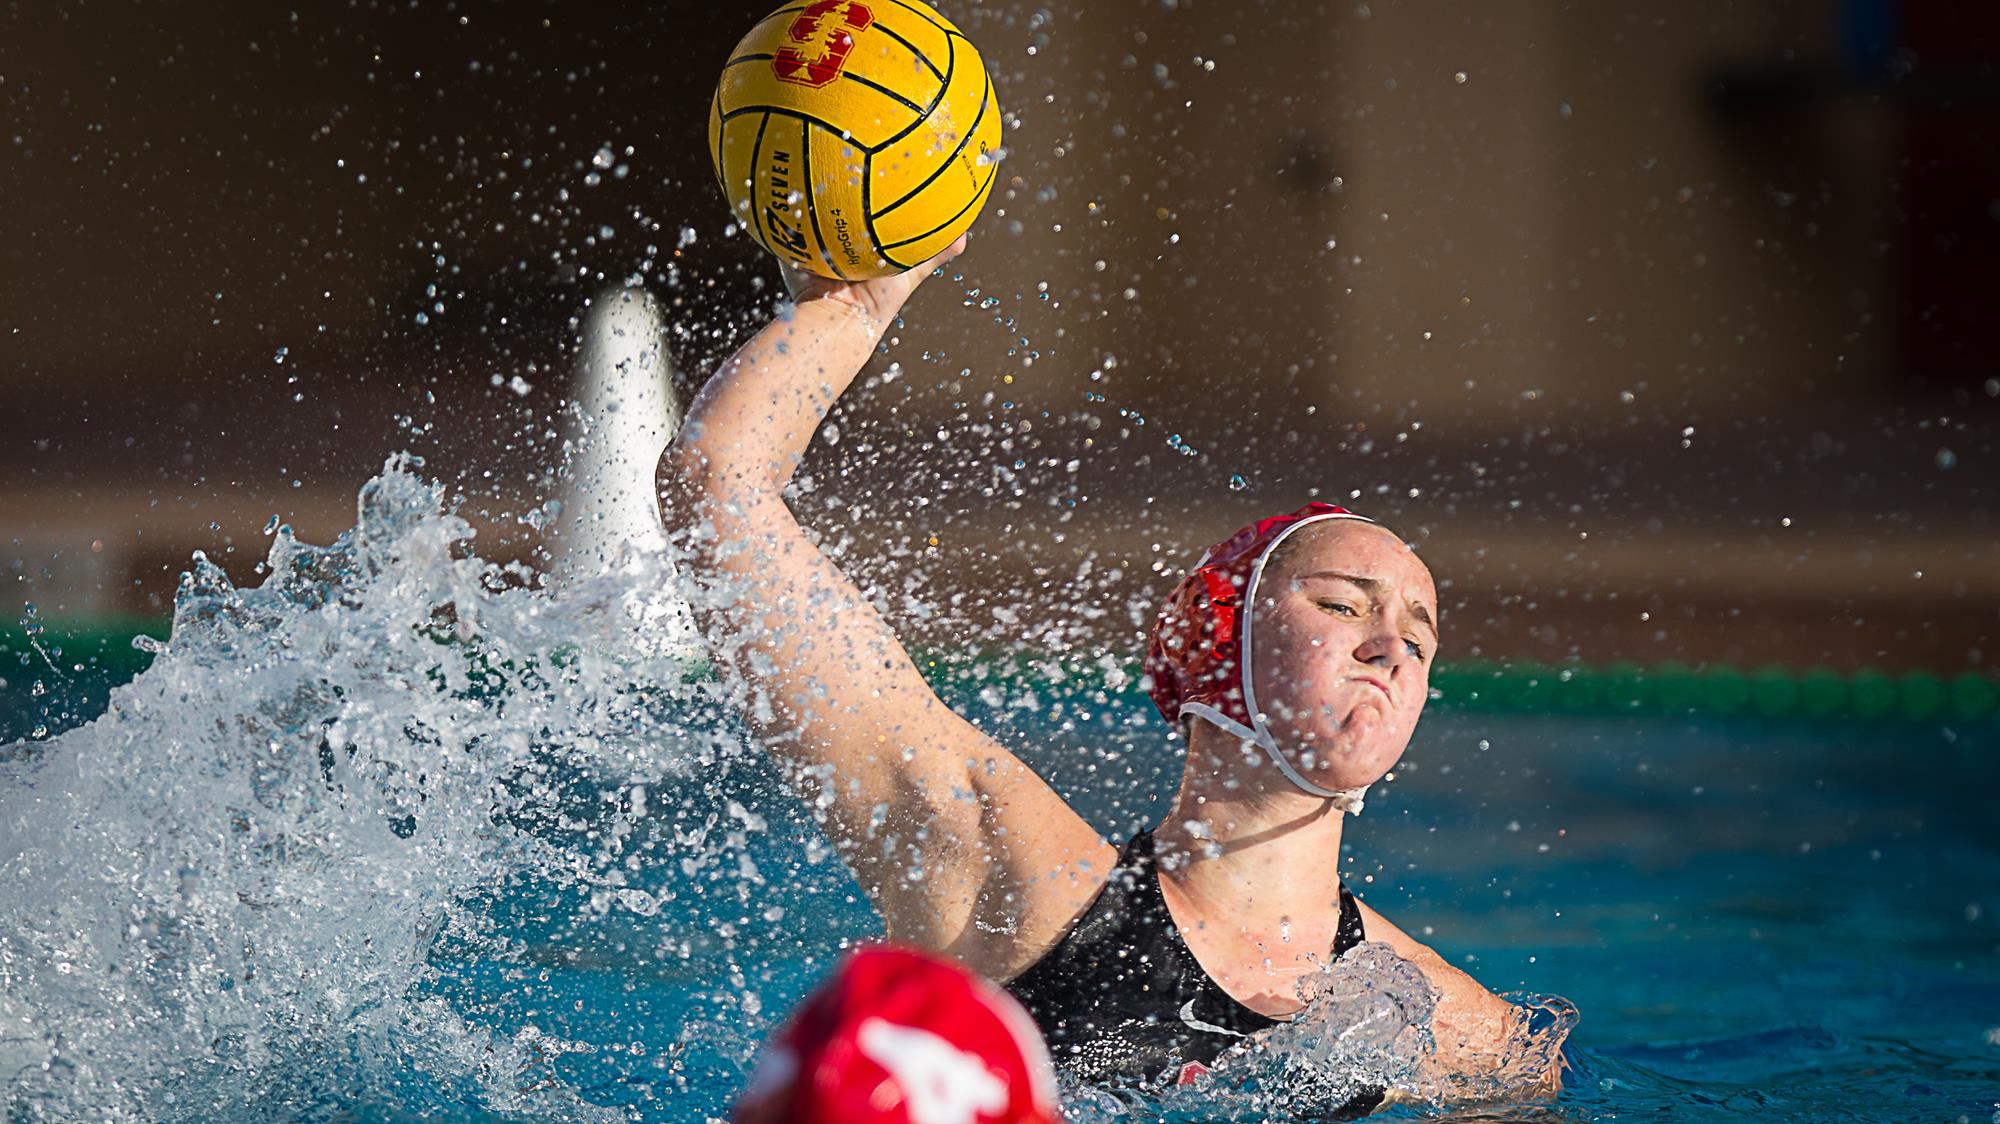 Perfect 10 - Stanford Women's Water Polo 2018-02-25 04:25